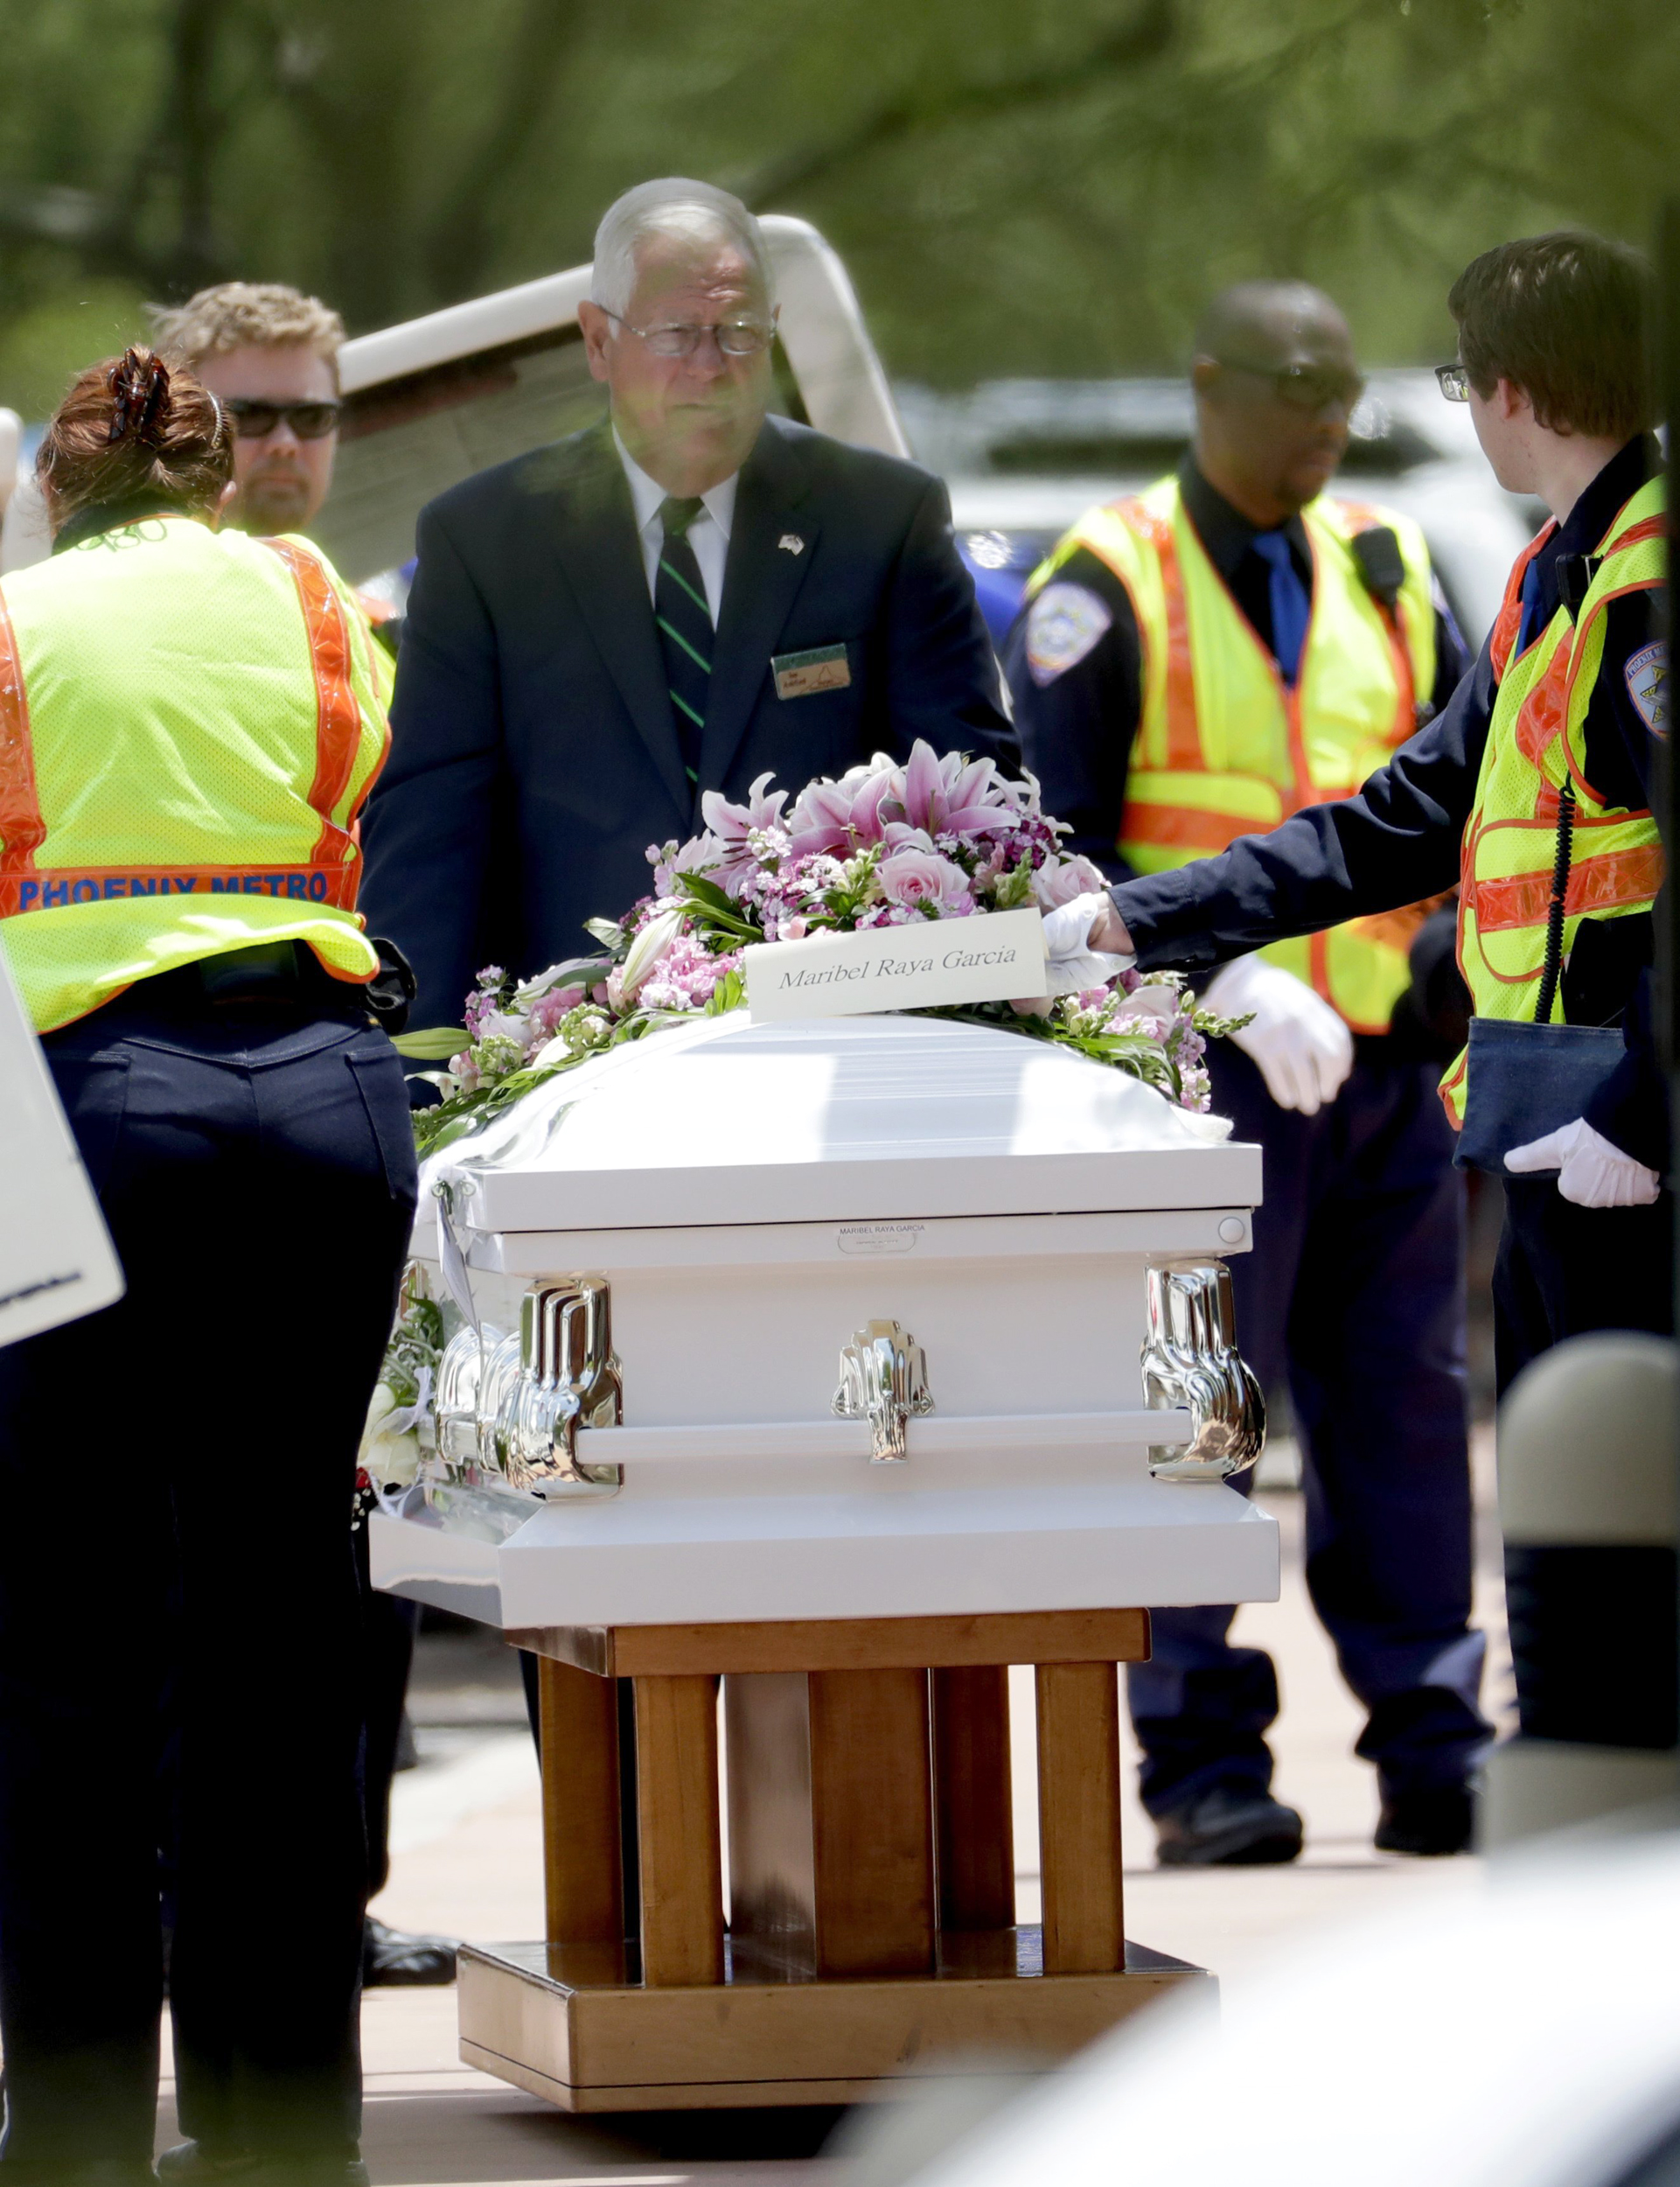 10 White Caskets And Memories Funeral Honors Flood Victims